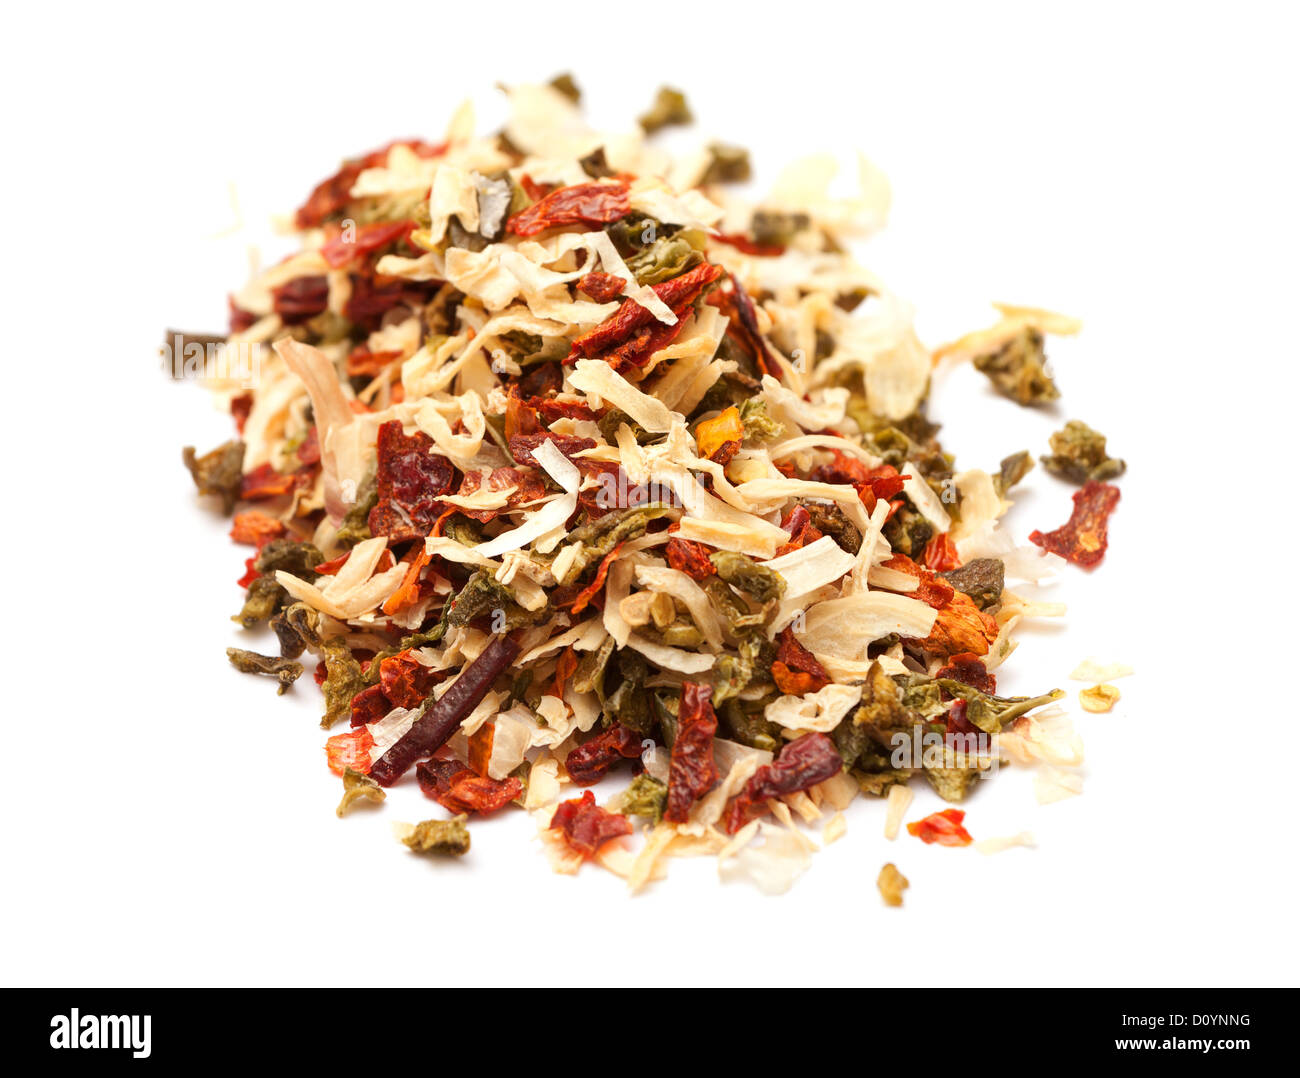 multi-colored spices - Stock Image